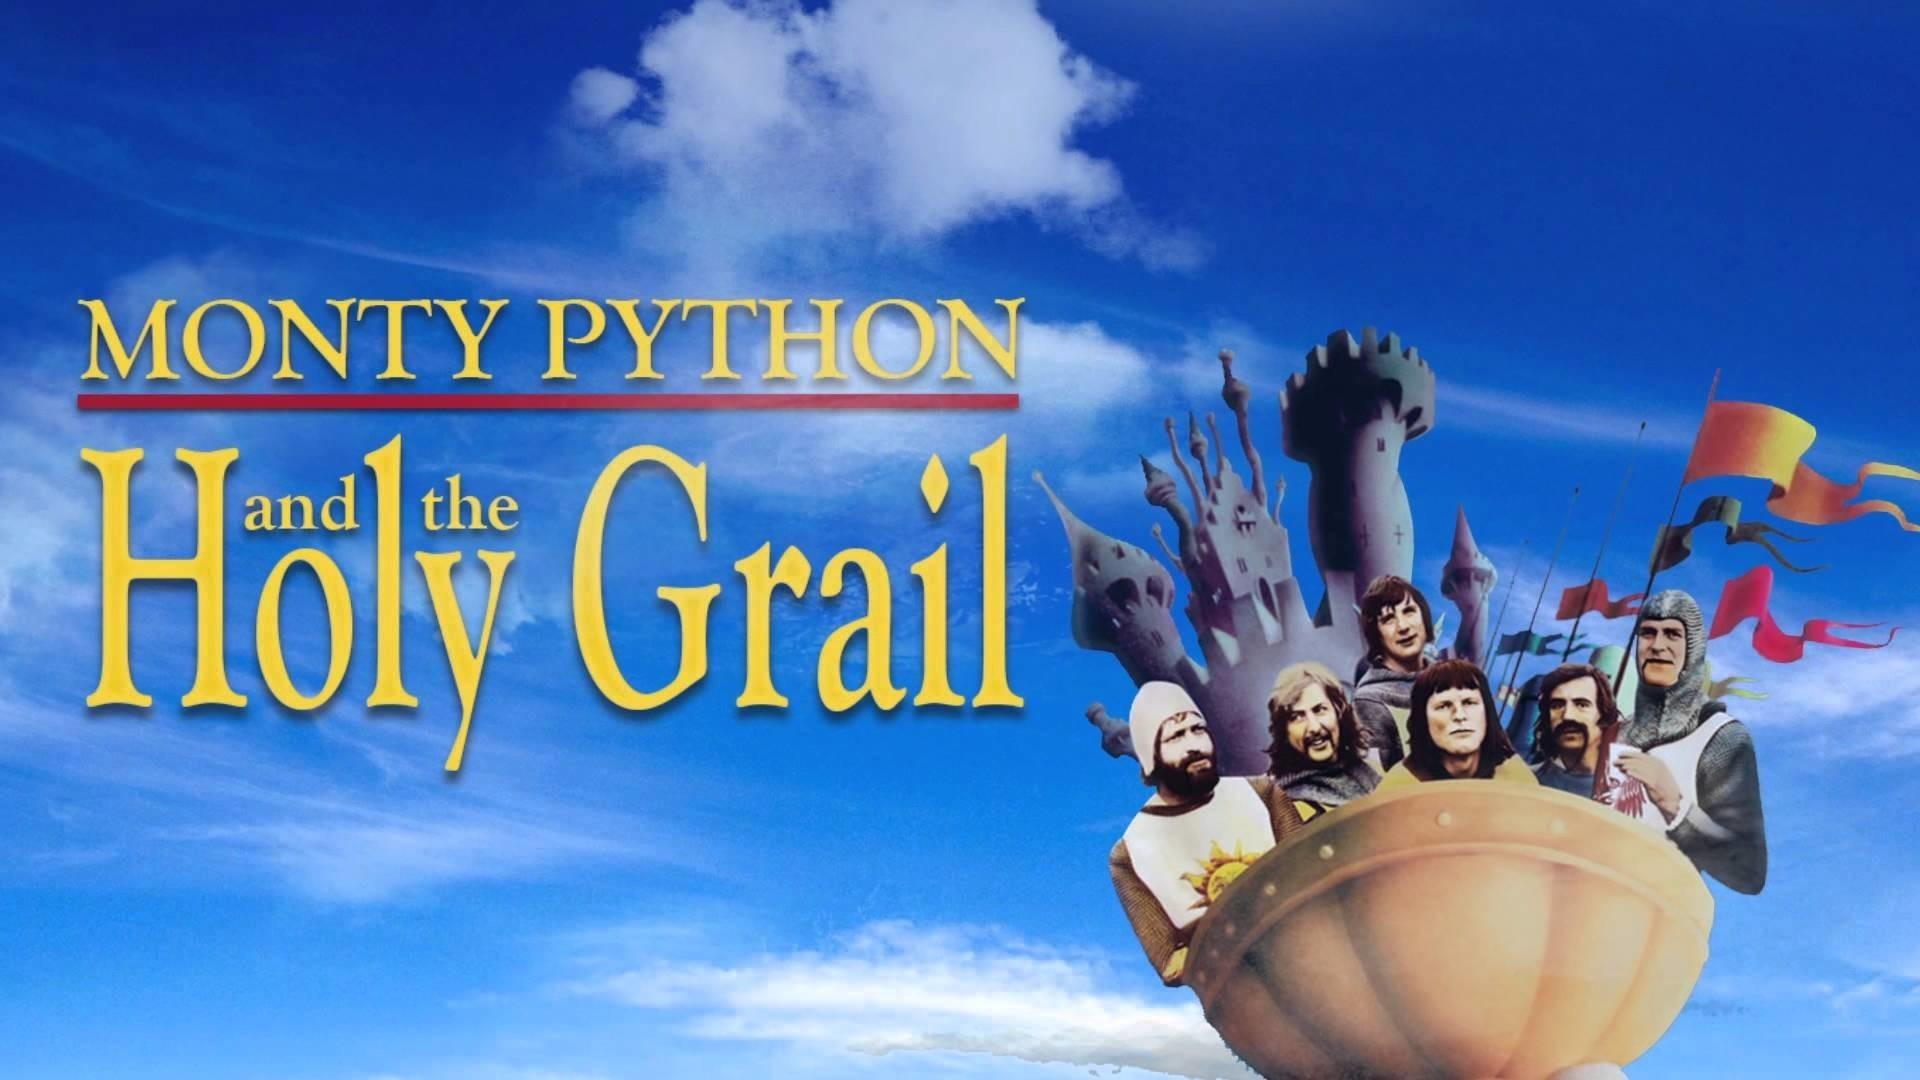 Monty Python Wallpapers